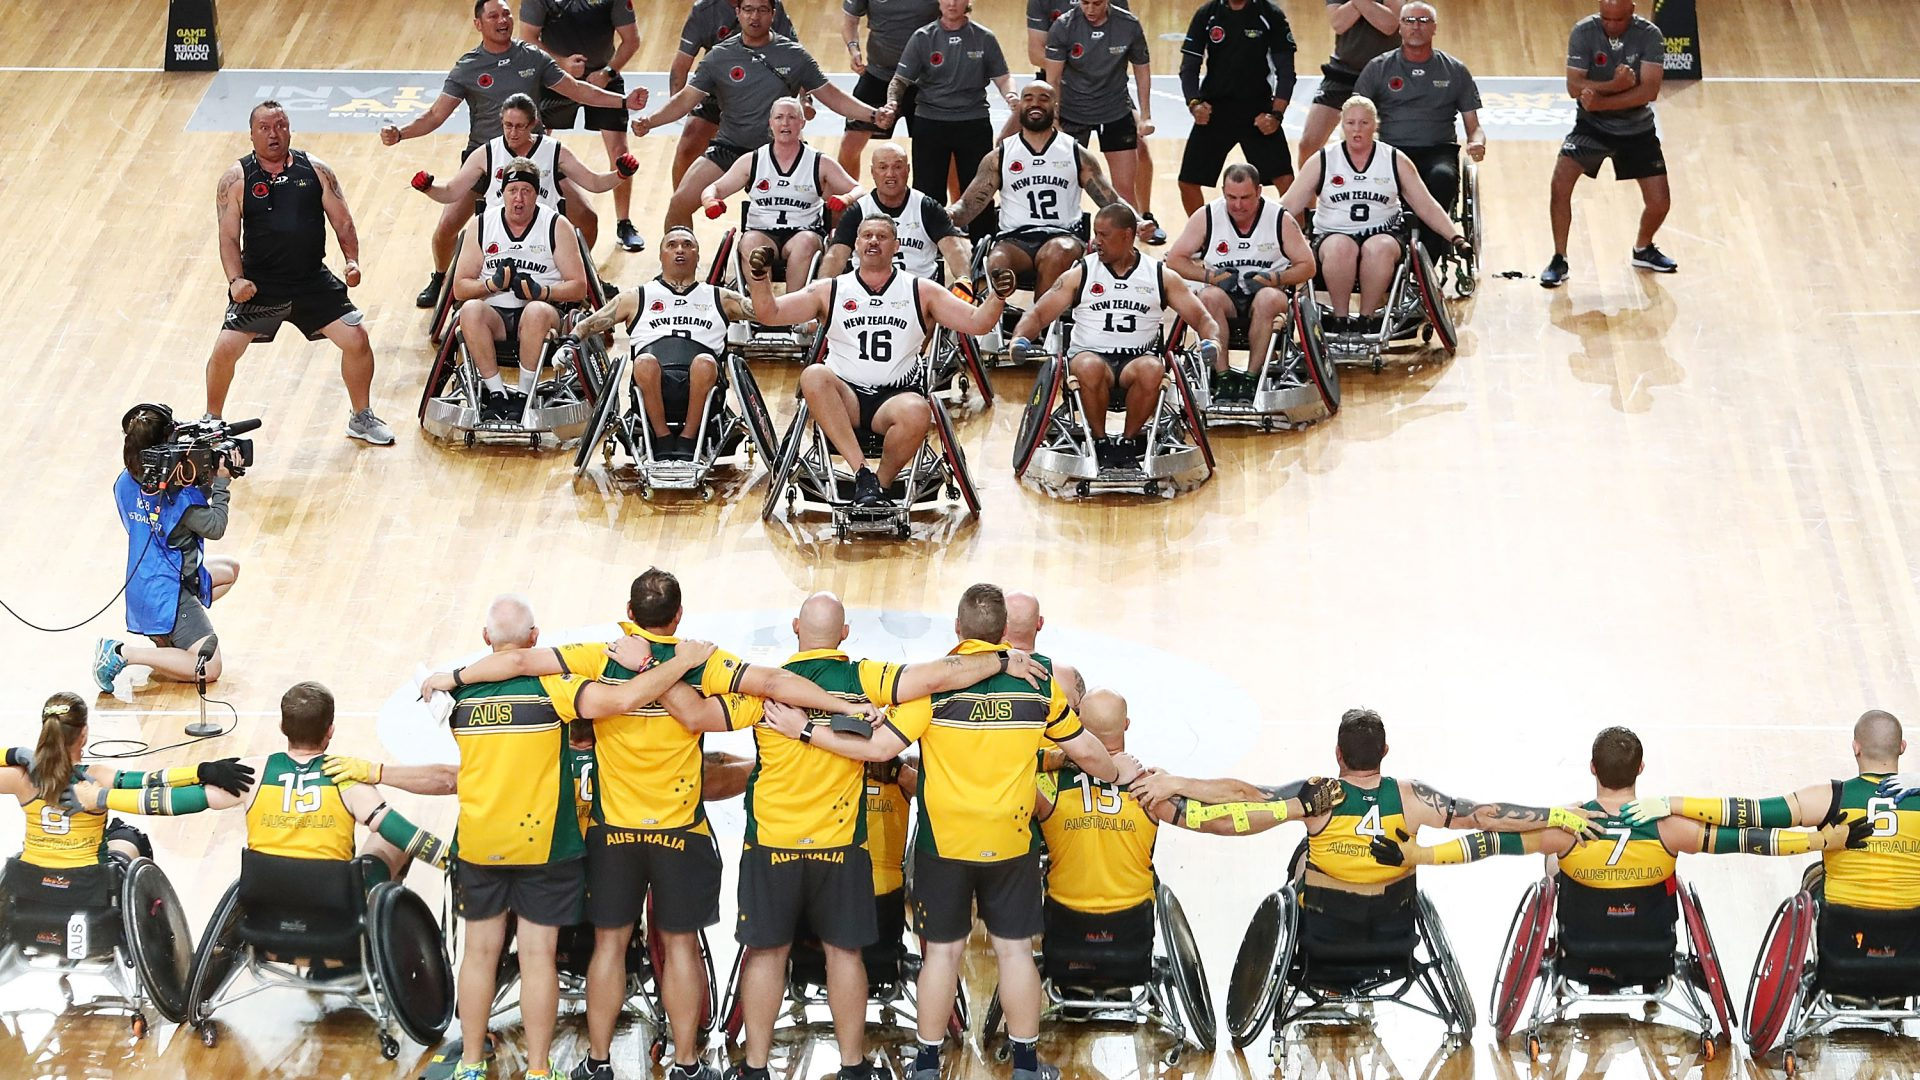 About the Invictus Games